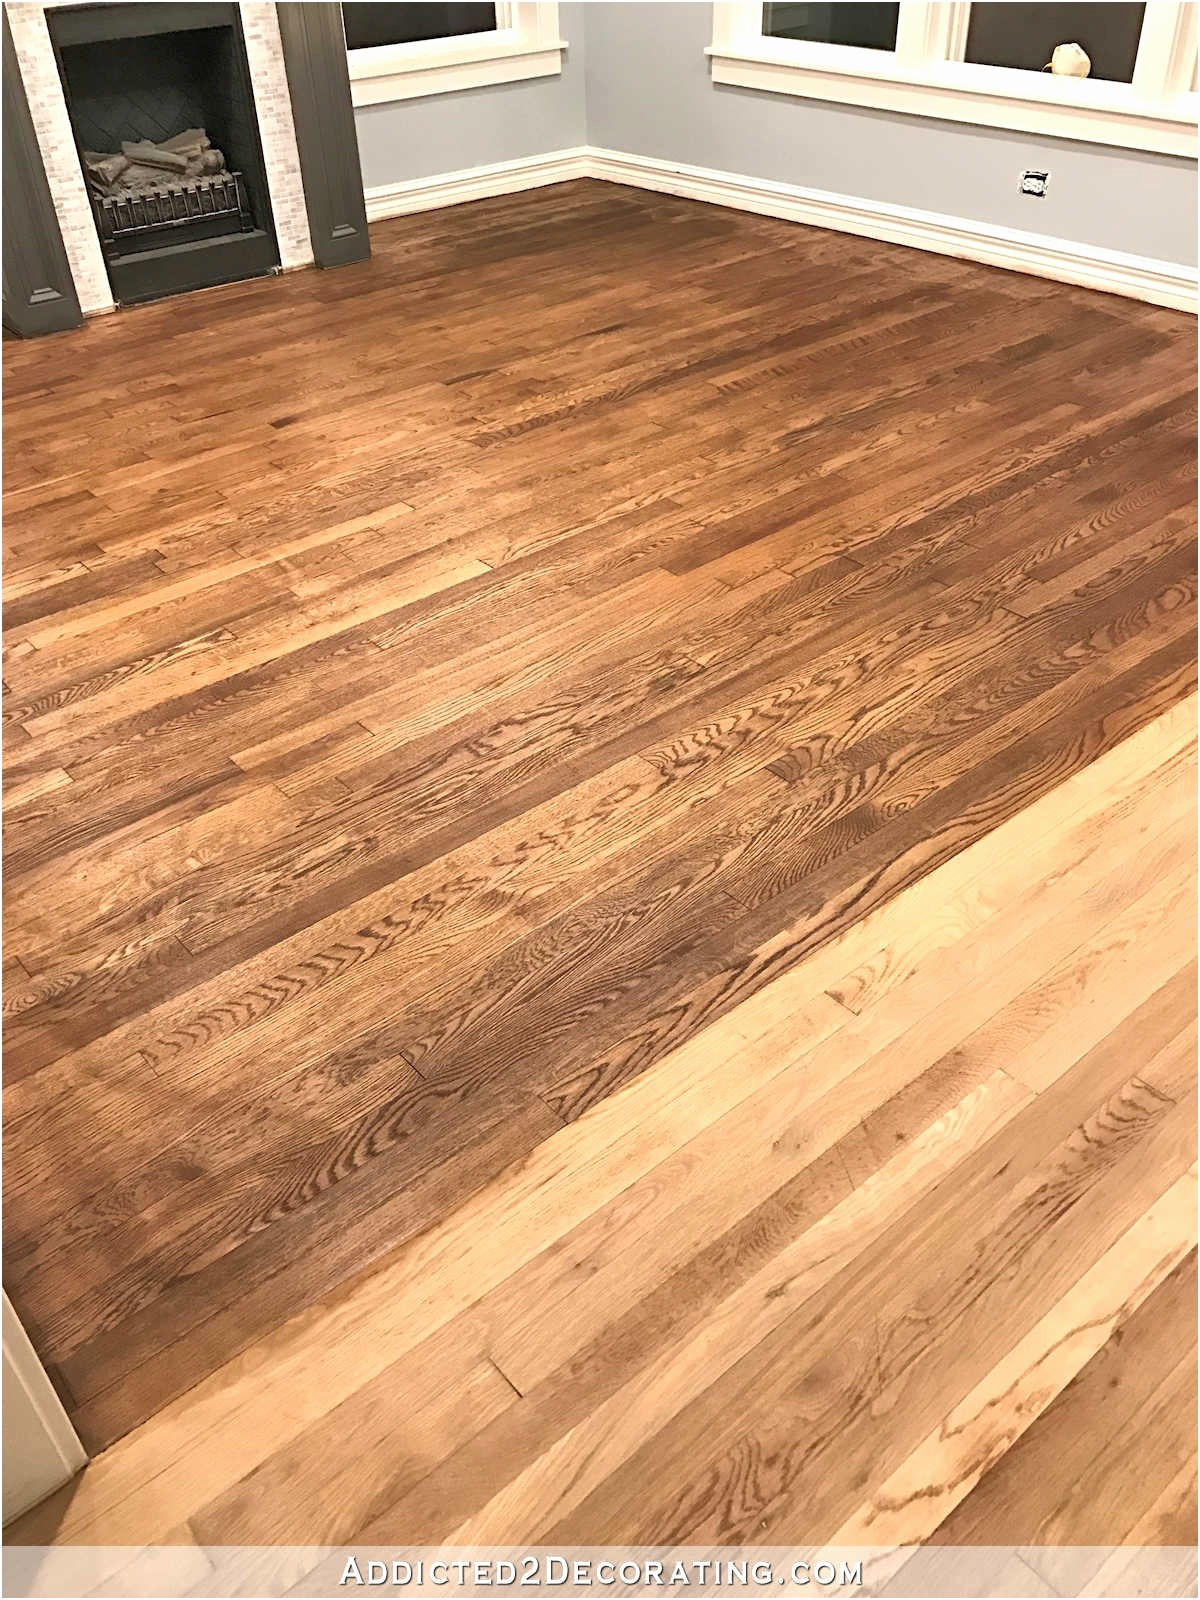 Stained Hardwood Floors Pictures Of 13 Best Of Cost Of Hardwood Floors Gallery Dizpos Com Inside Cost Of Hardwood Floors Awesome Picture 48 Of 50 Armstrong Hardwood Flooring Fresh Hardwood Image Of